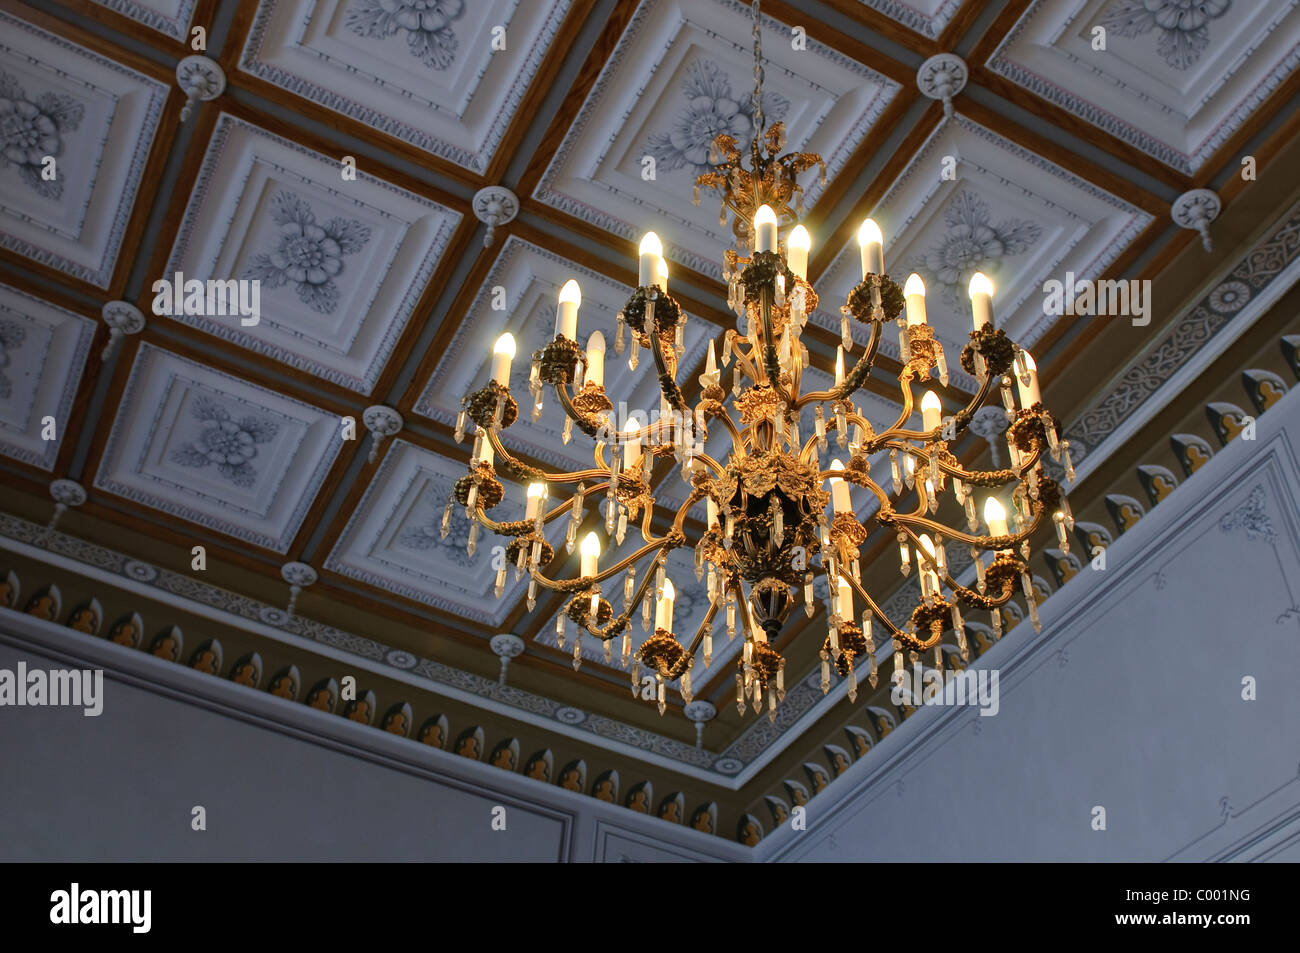 old chandelier - Stock Image